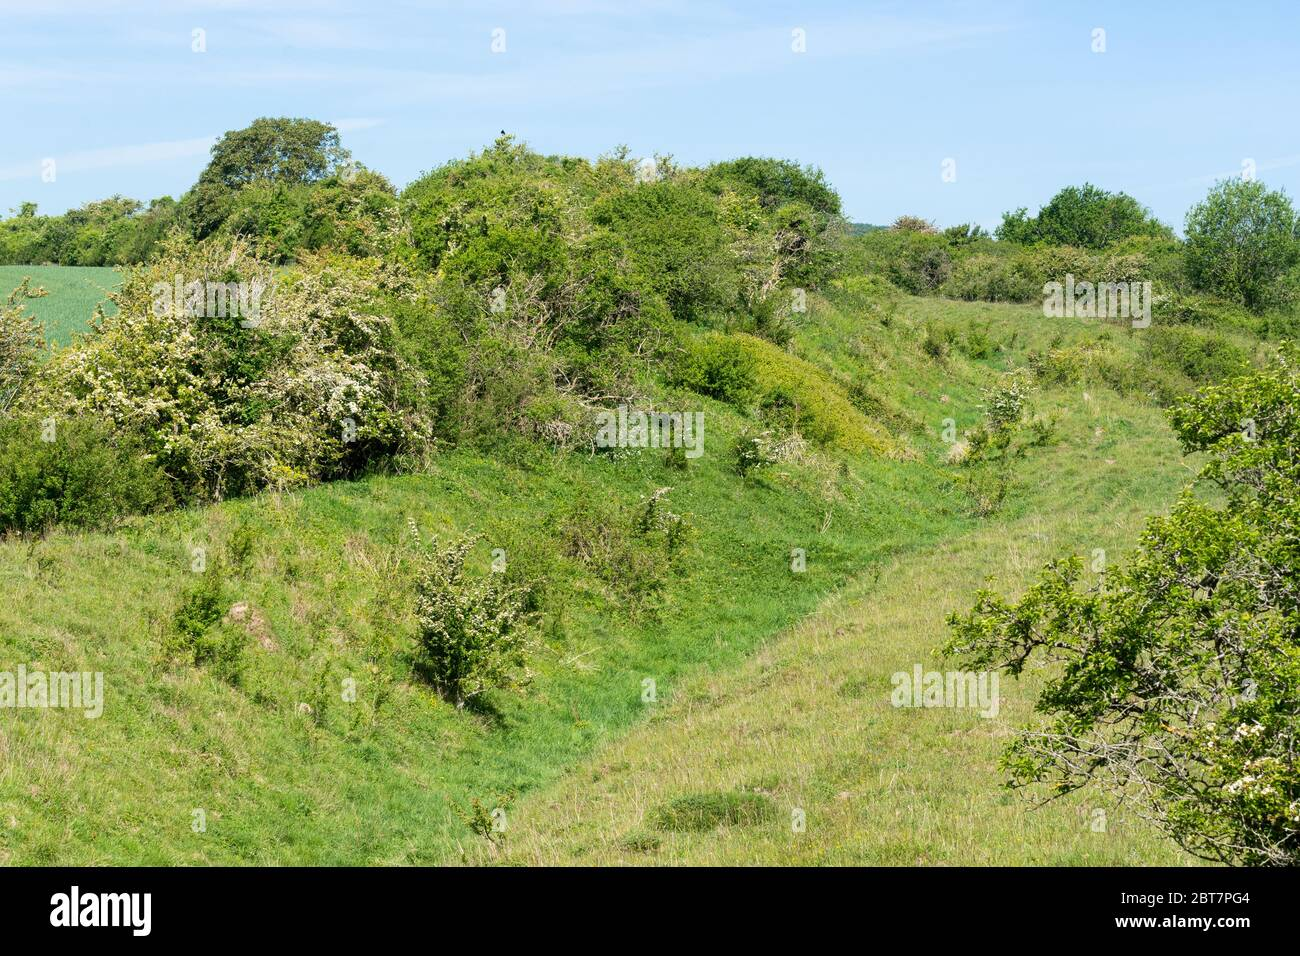 martin-down-national-nature-reserve-chalk-downland-landscape-in-hampshire-england-uk-with-the-bokerley-dyke-ditch-a-historic-linear-earthwork-2BT7PG4.jpg